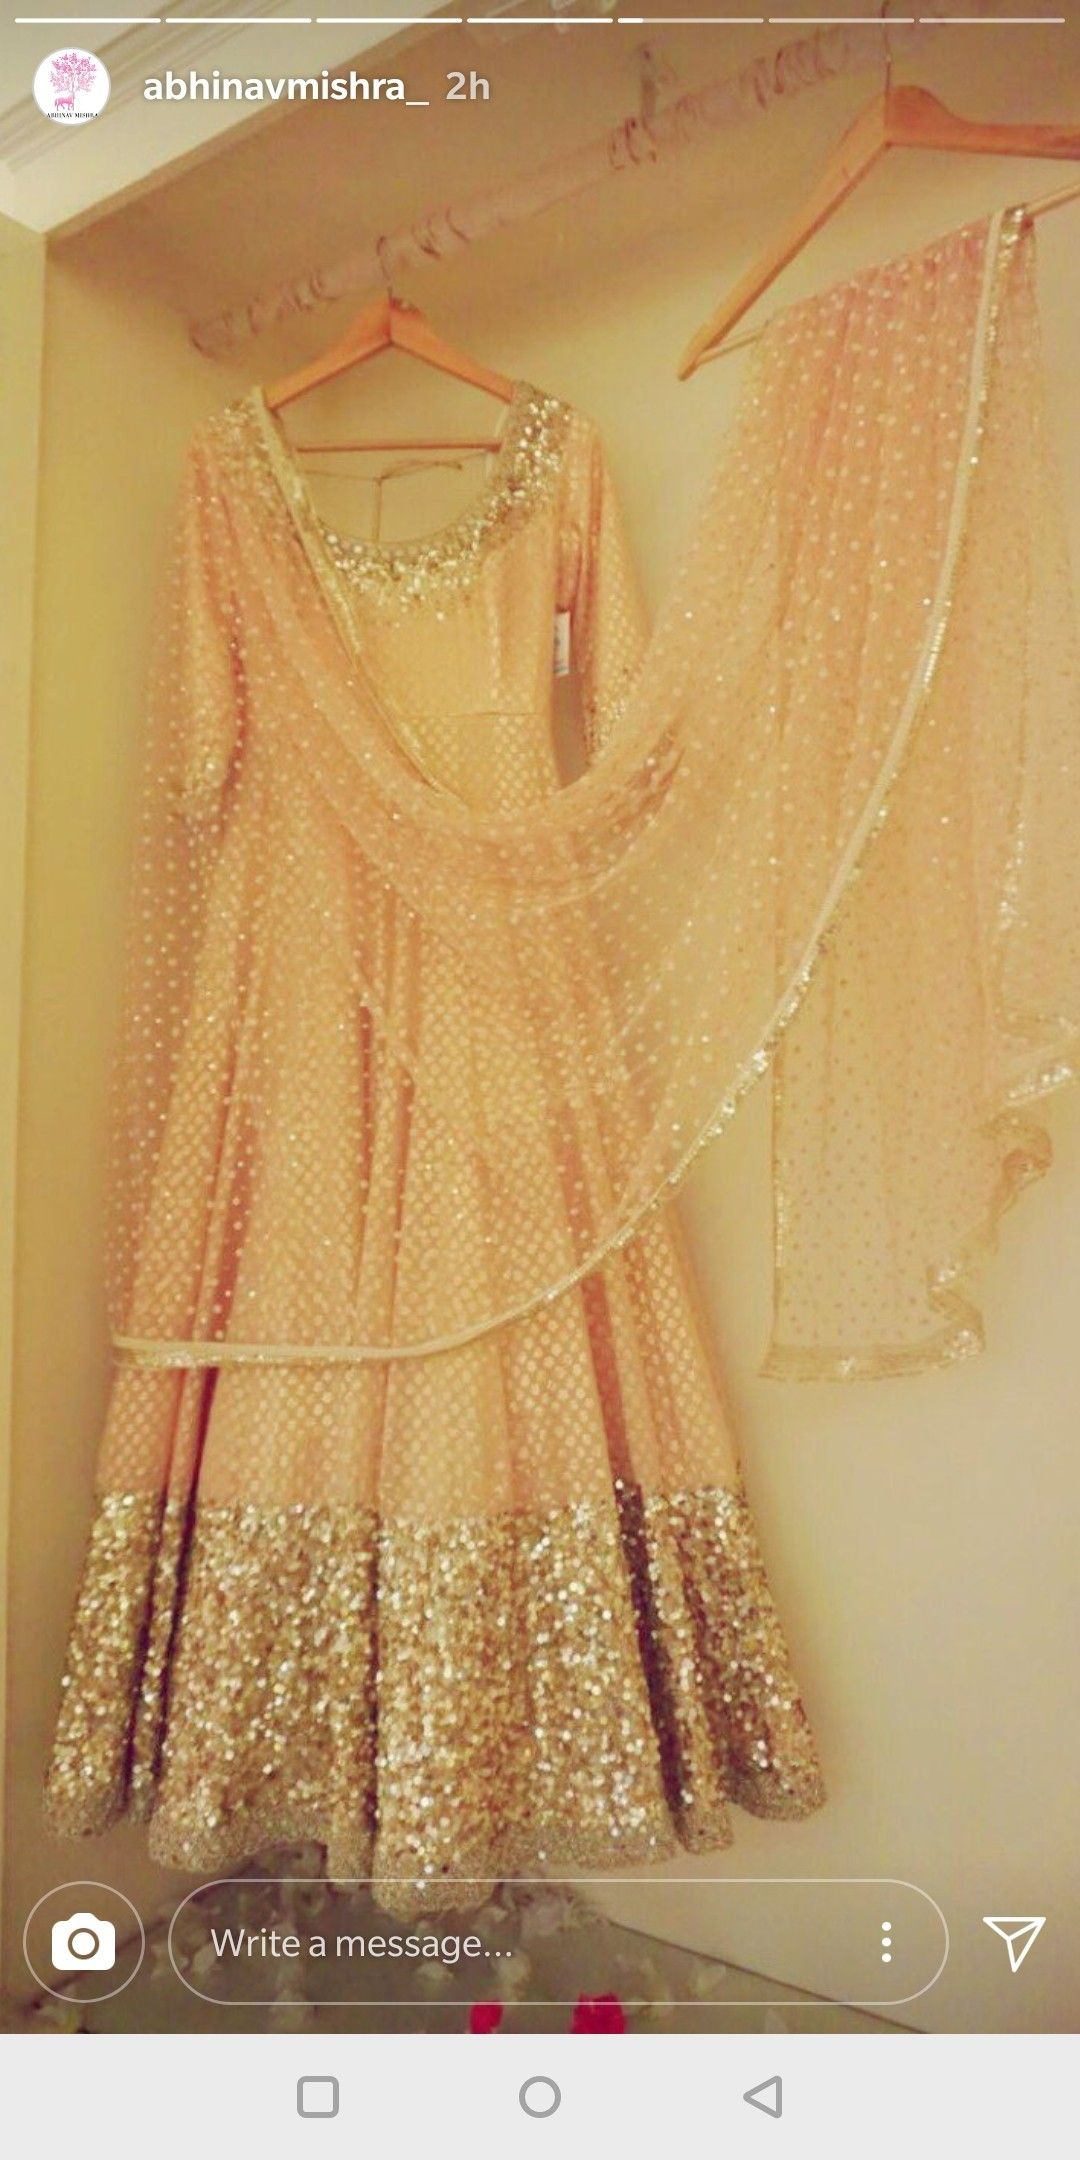 Dresses to wear to a wedding as a guest in april  Pin by Sumita Rai on My Style  Pinterest  Indian wear Indian